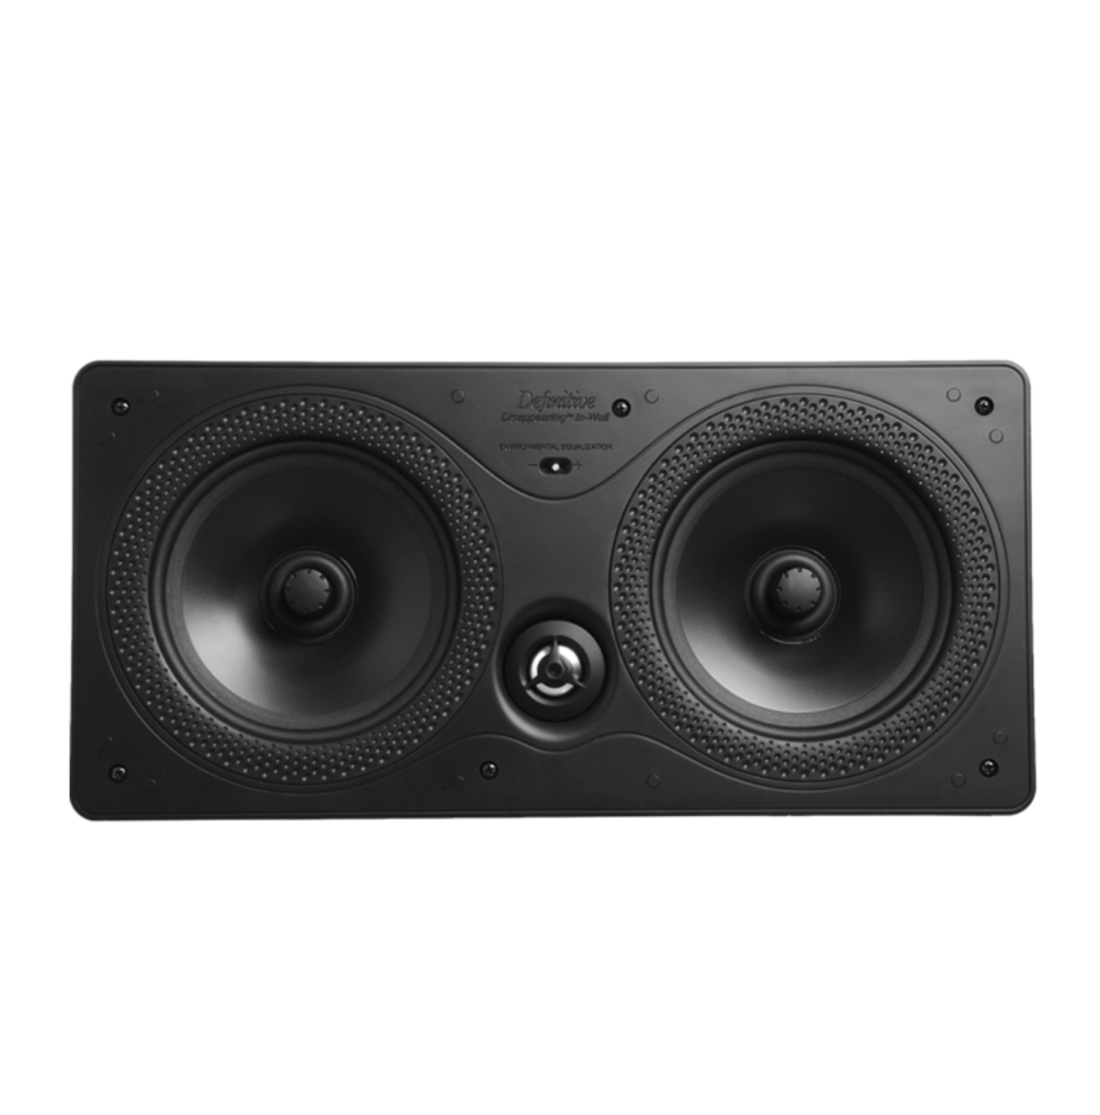 Caixa Central Definitive Technology DI 6.5LCR - 200w RMS